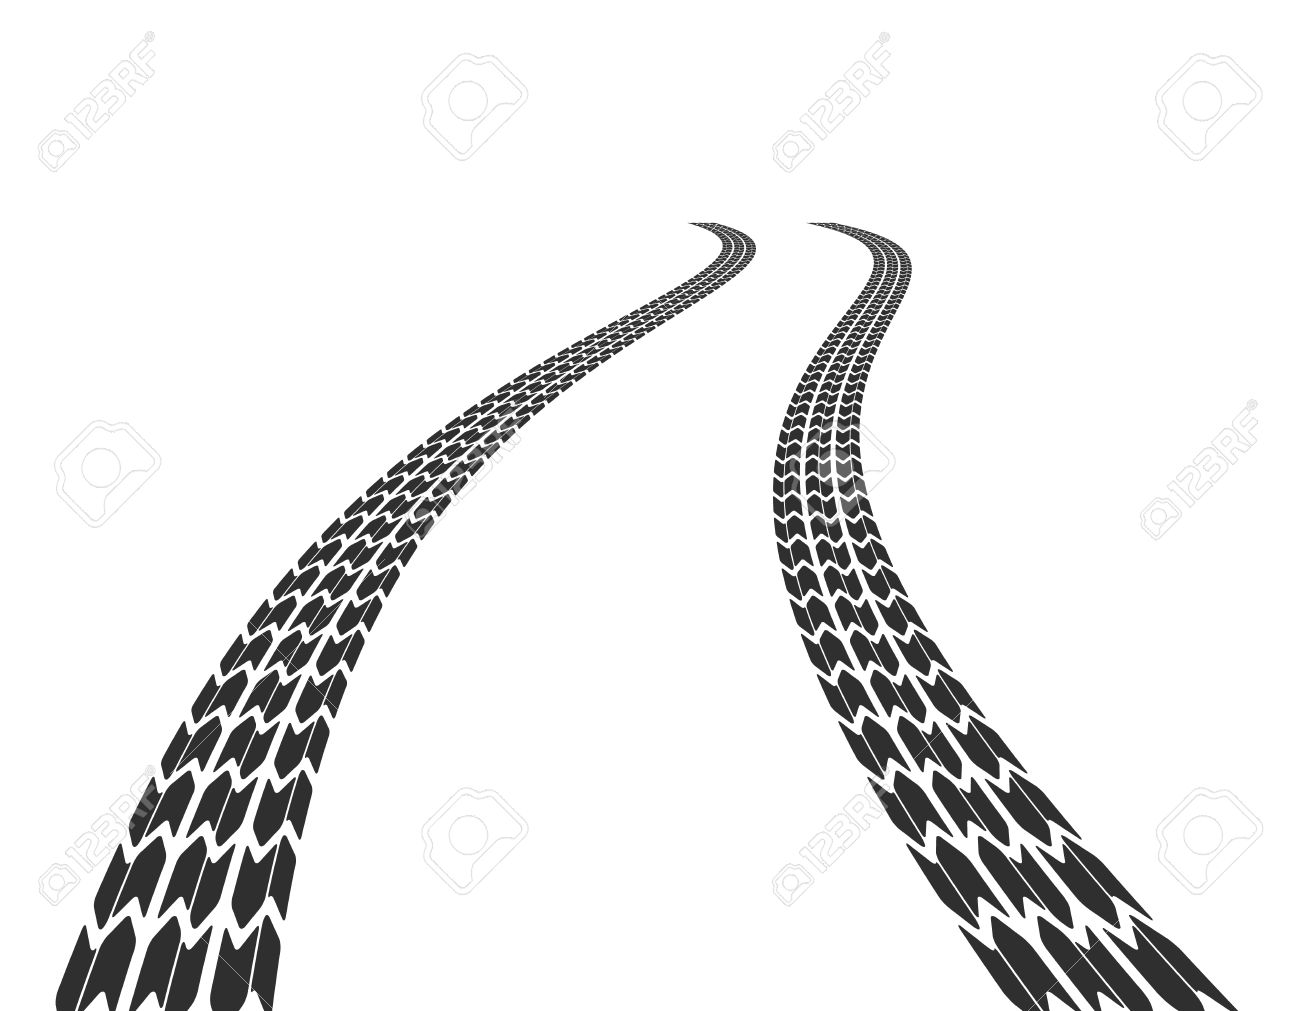 Tire tracks clipart free clip art transparent library Tire Tracks Drawing at PaintingValley.com | Explore ... clip art transparent library